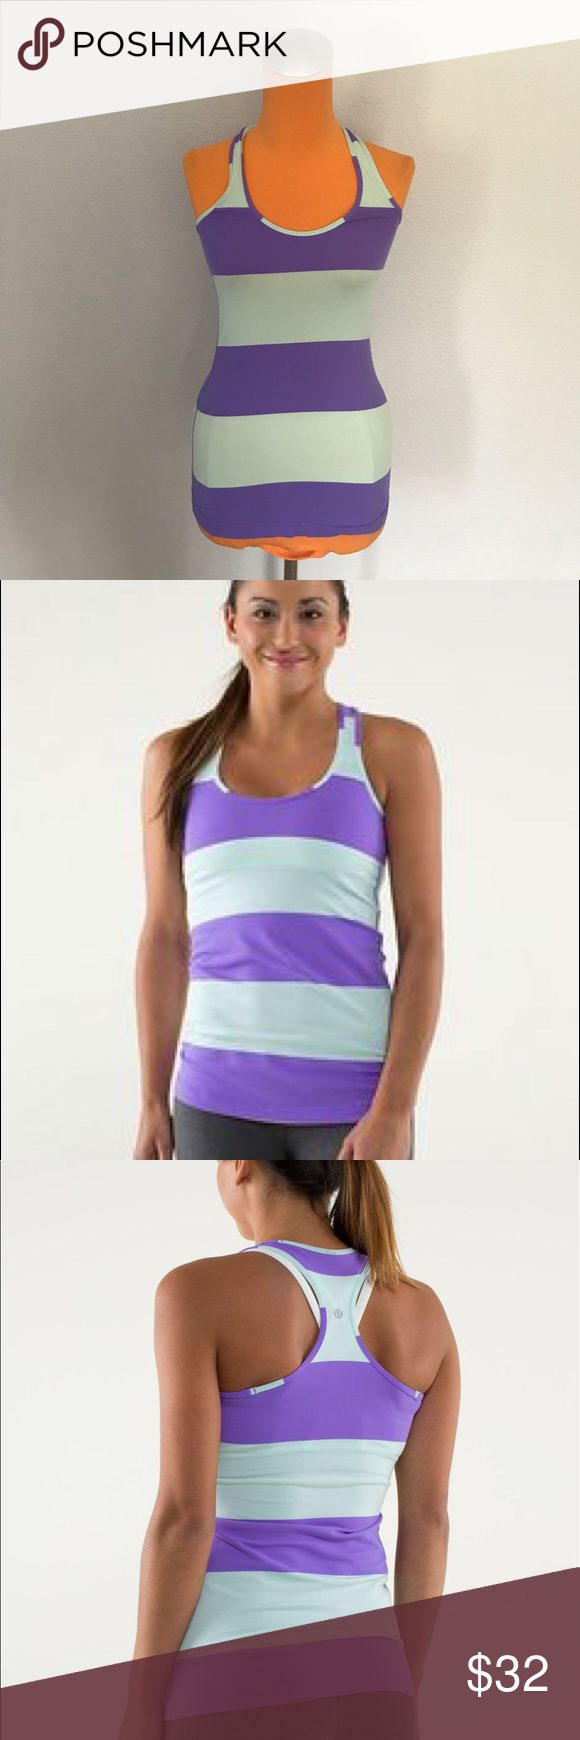 "Lululemon Bold Stripe Power Purple Cool Racerback 26"" length 12.5"" armpit to armpit. Is perfect for yoga, running or training. Is in the bold stripe power purple color. Light blue and purple coloring. Excellent condition. Size tag missing see measurements is between a 2/4. Bundle 2+ items for a discount. lululemon athletica Tops Tank Tops"